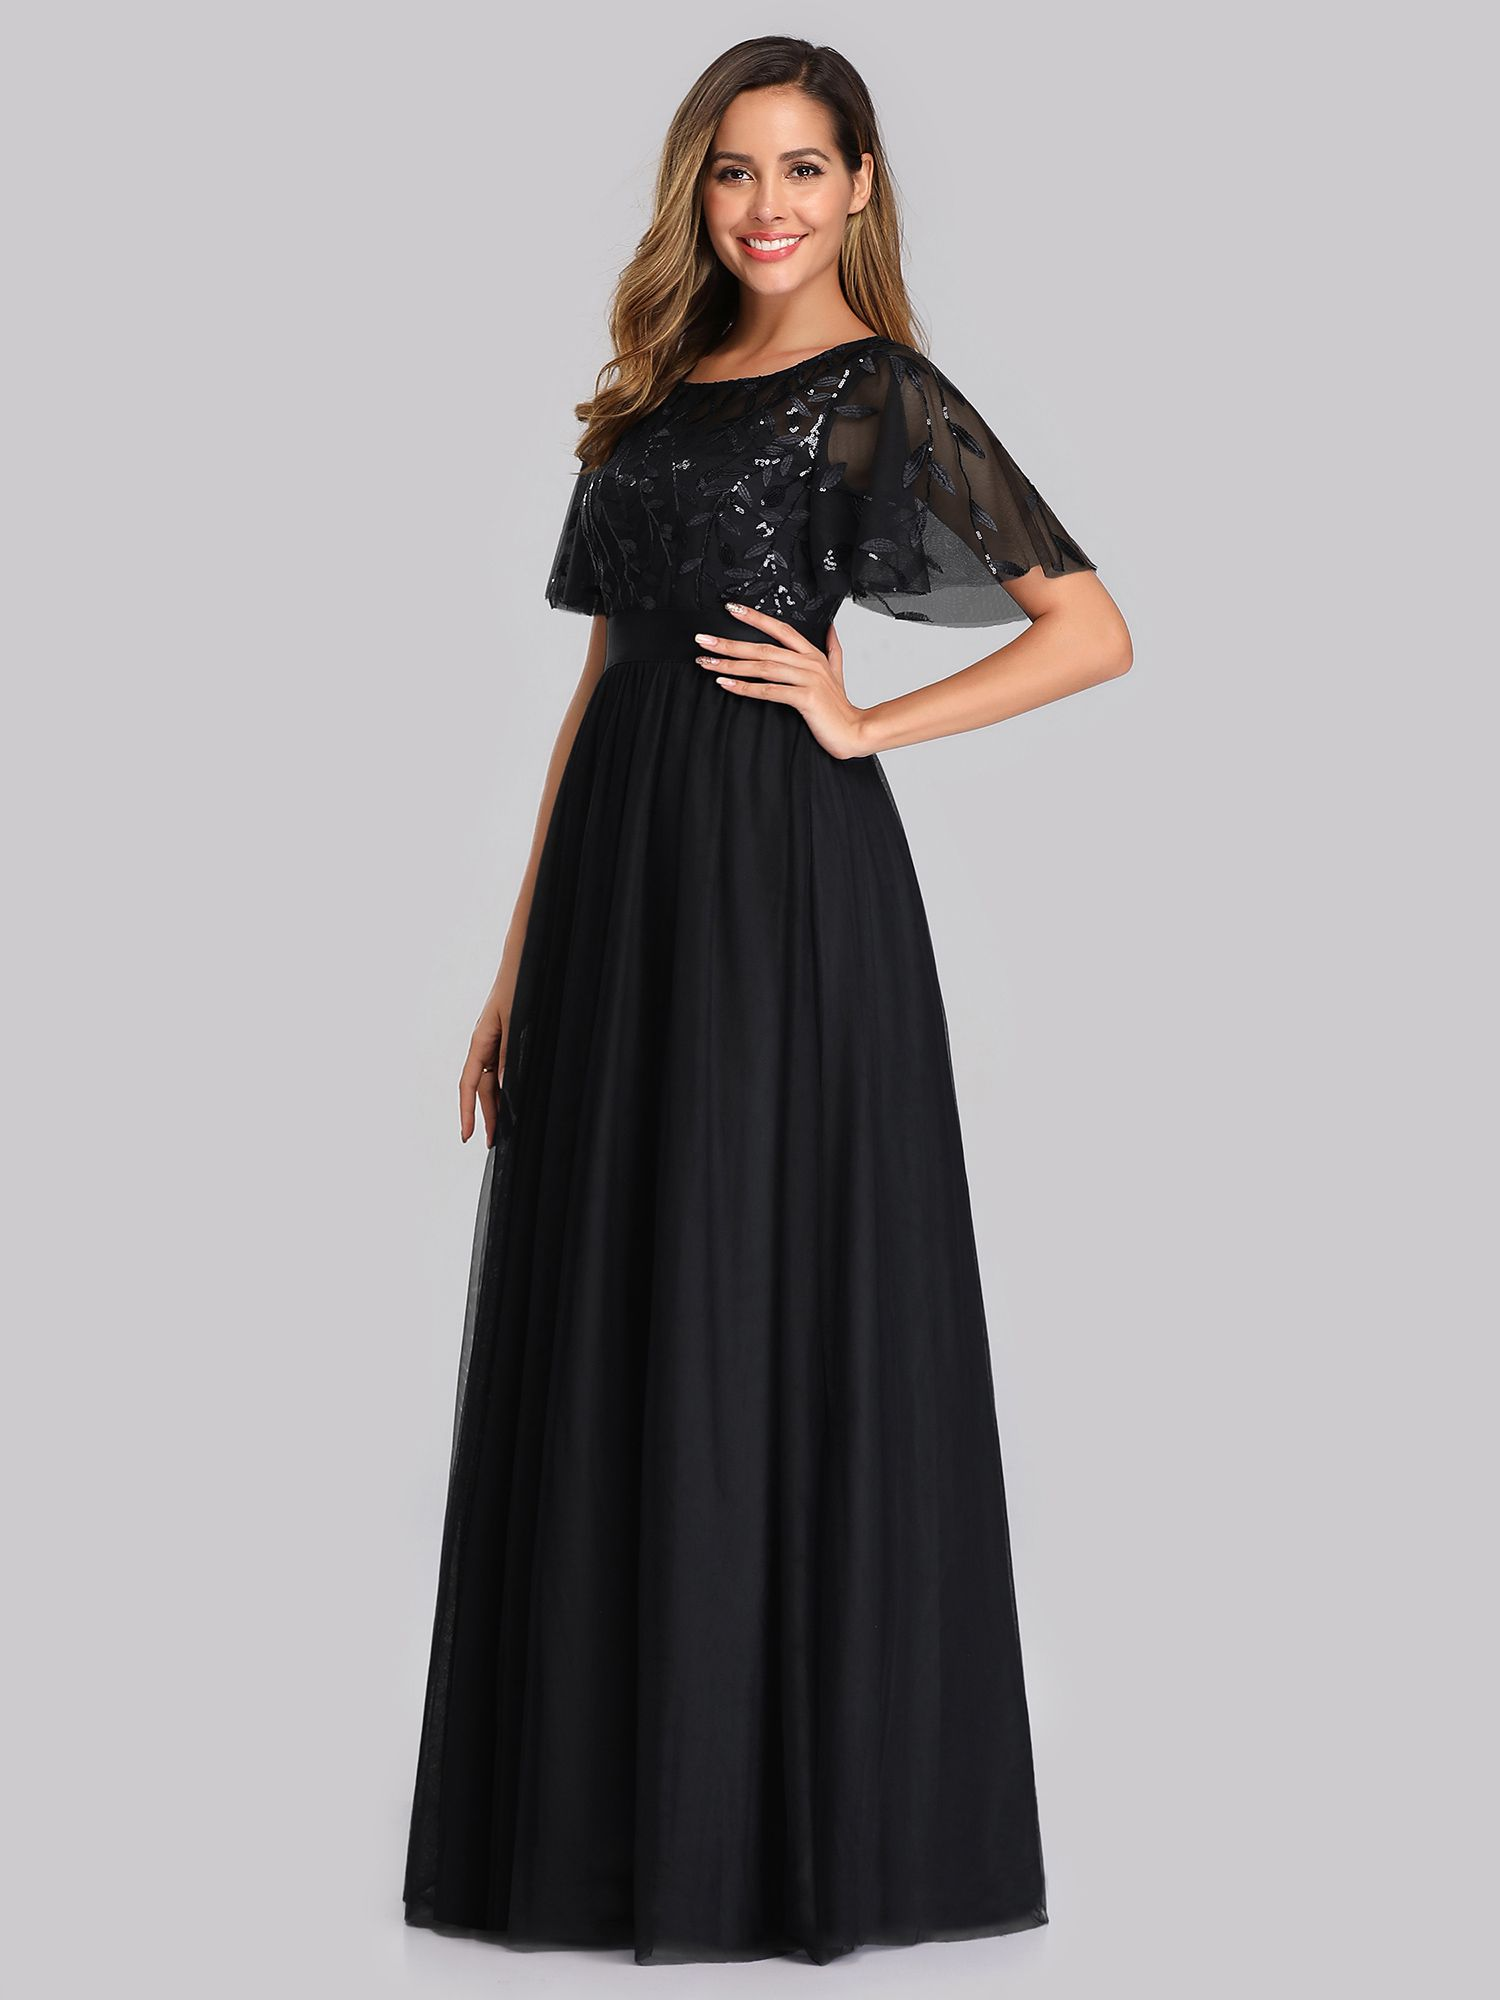 Ever Pretty Ever Pretty Womens Elegant Round Neck Tulle Evening Party Bridesmaid Dresses For Women 00904 Black Us16 Walmart Com Gowns Of Elegance Formal Dresses For Women Beautiful Evening Dresses [ 2000 x 1500 Pixel ]